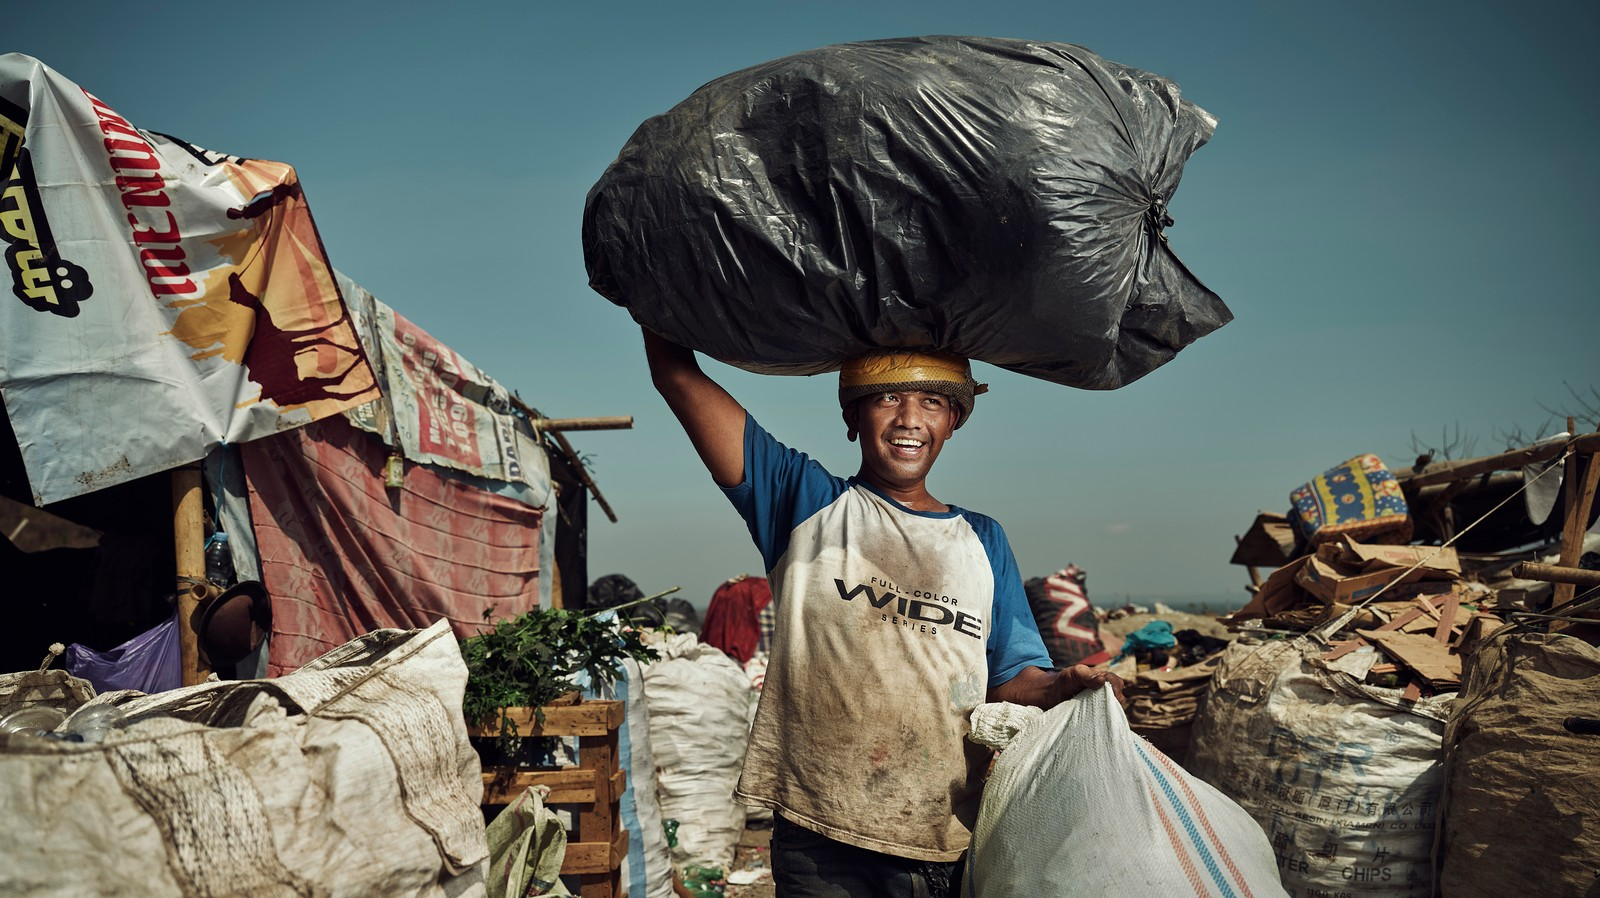 Photos of the People Who Live and Work at Some of Indonesia's Biggest Landfills